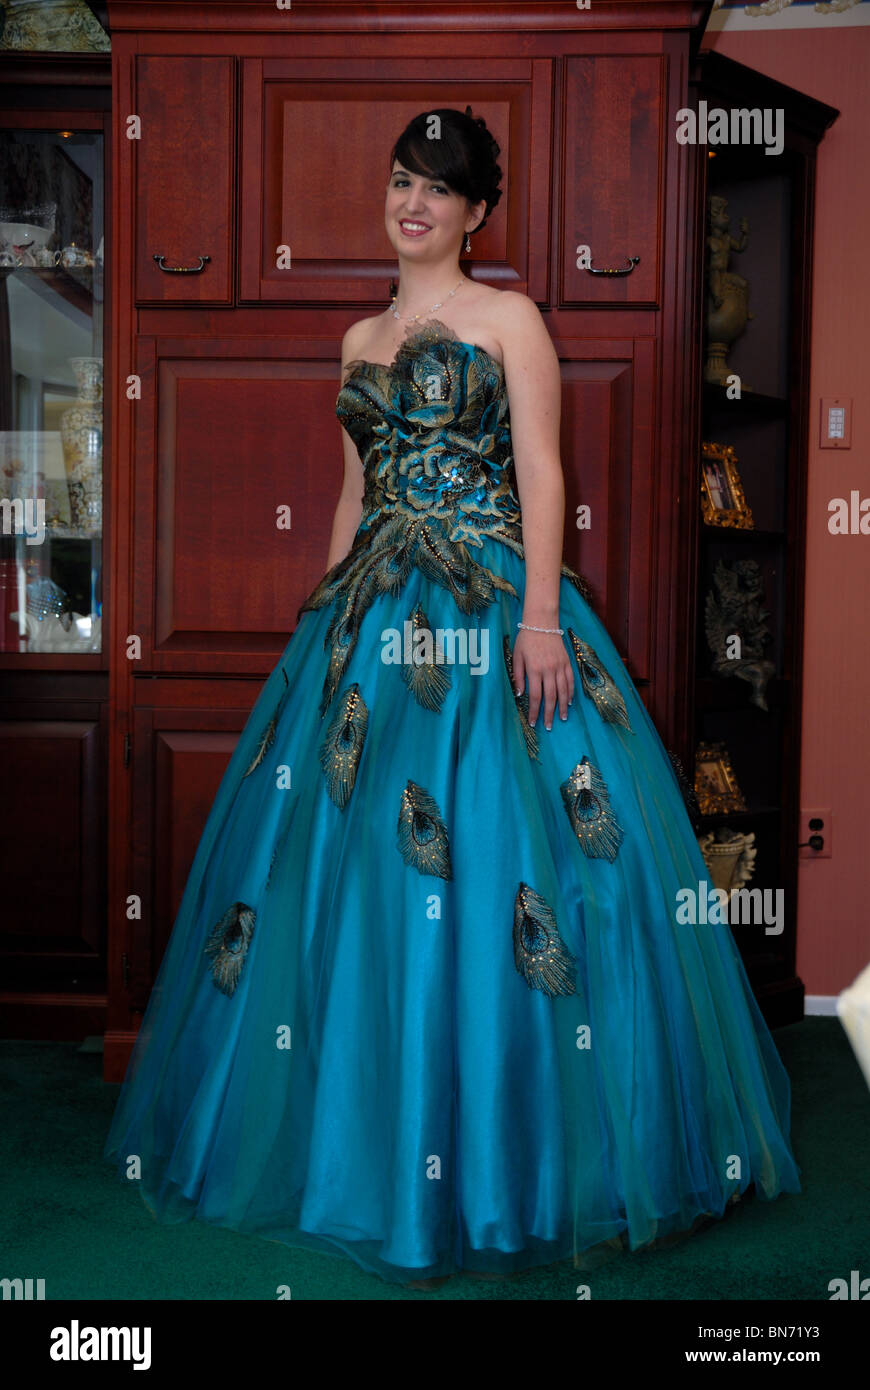 Magnificent Prom Dress Stores In Nyc Crest - All Wedding Dresses ...